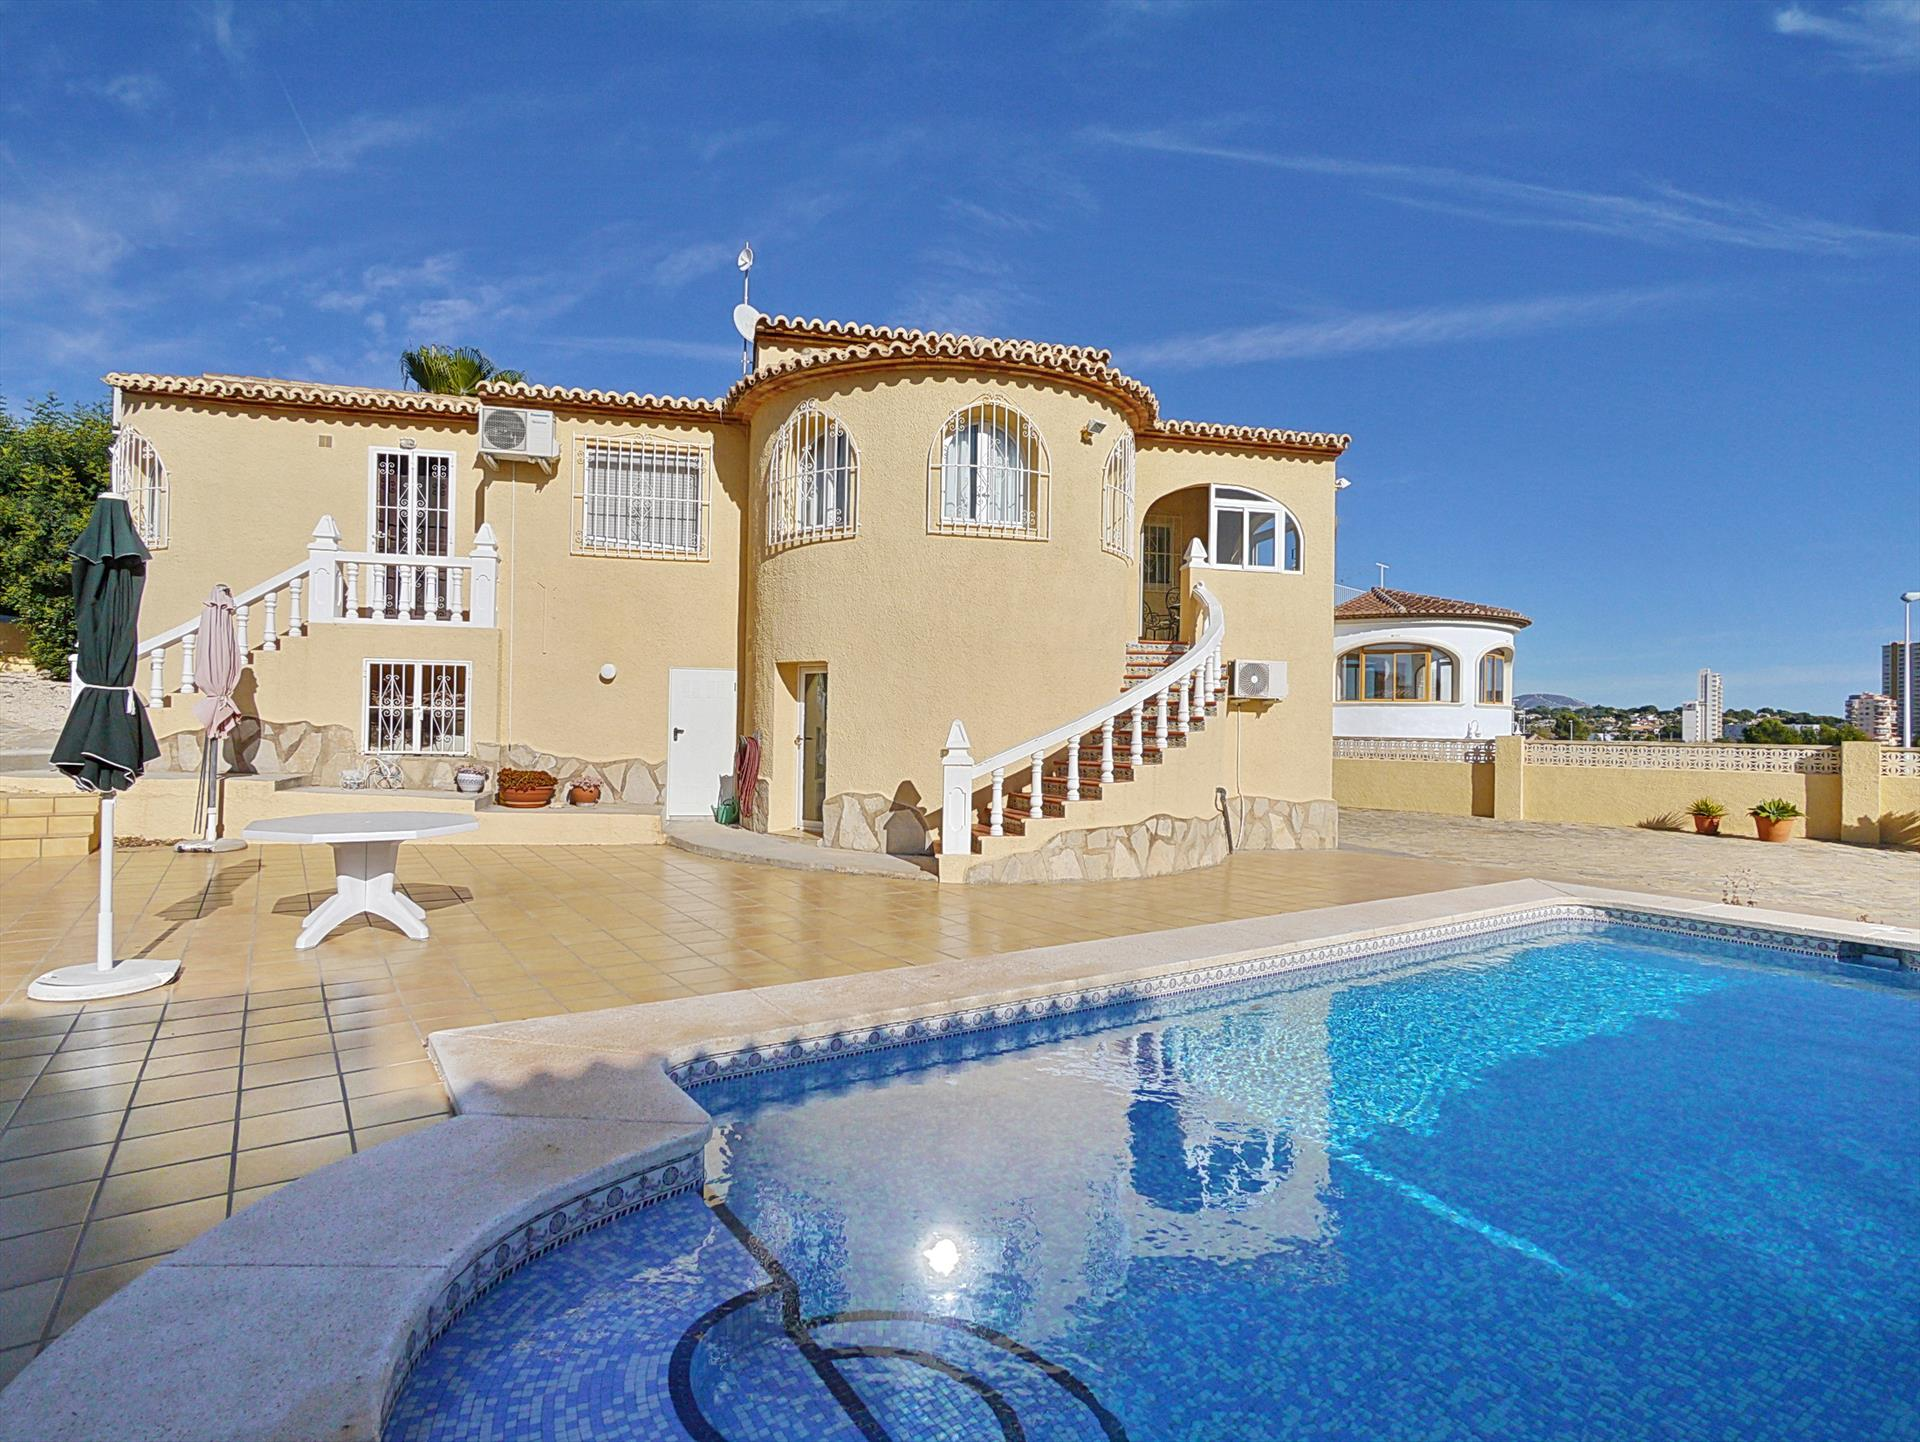 Salinas II 4P, Beautiful and classic villa in Calpe, on the Costa Blanca, Spain  with private pool for 4 persons.....